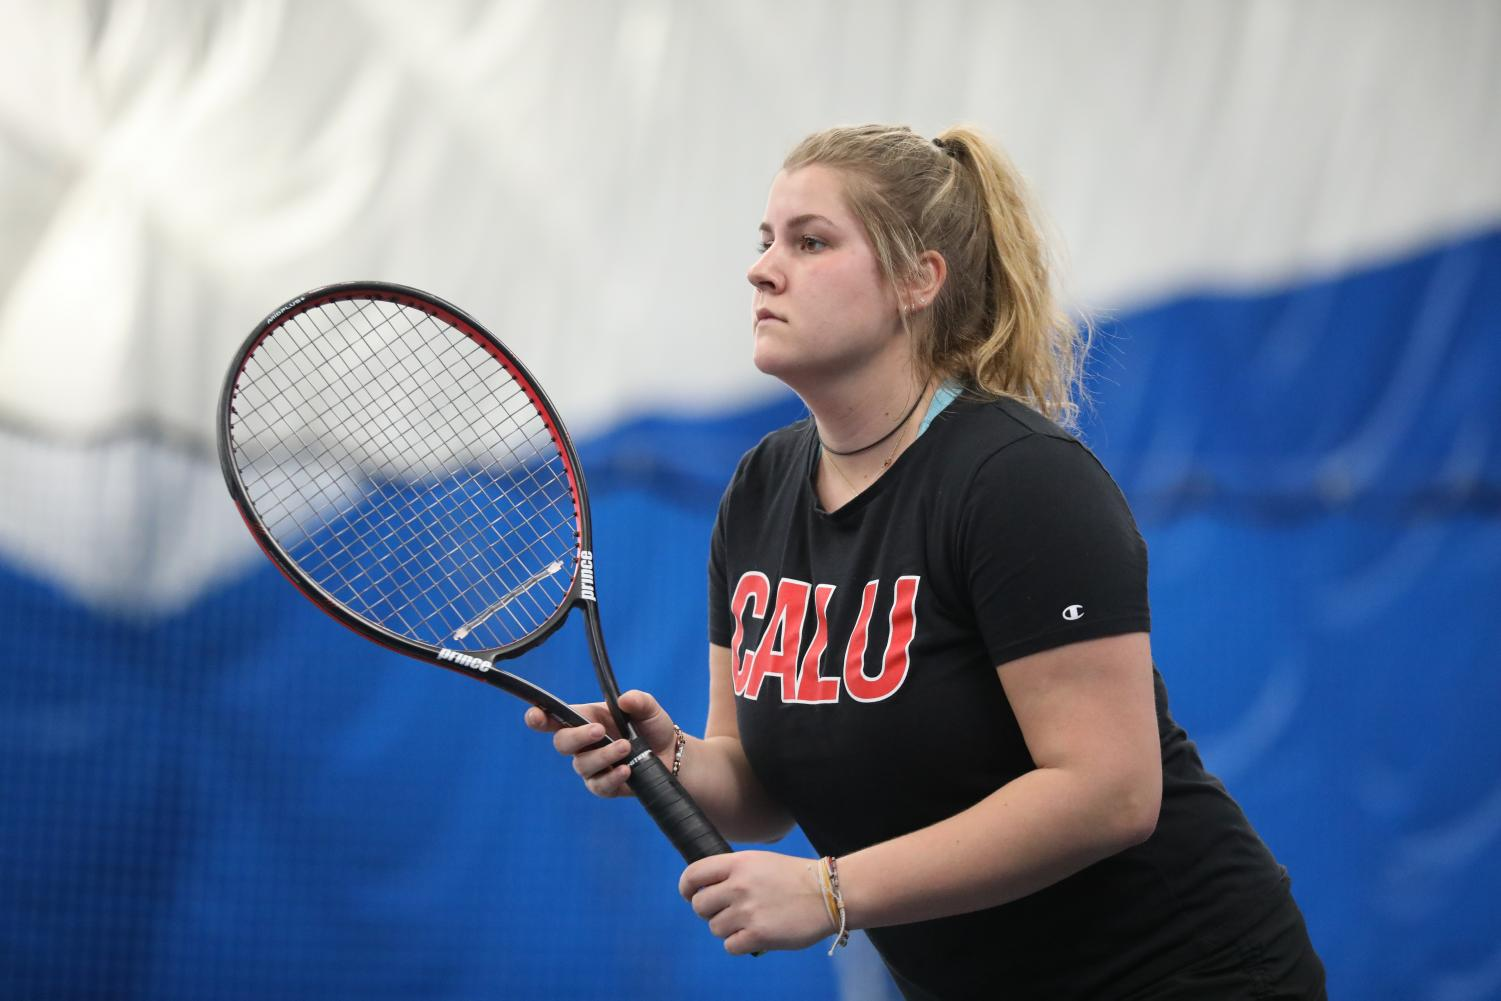 Photo of Cal U tennis player Charlie Gallagher courtesy of Jeff Helsel, SAI.